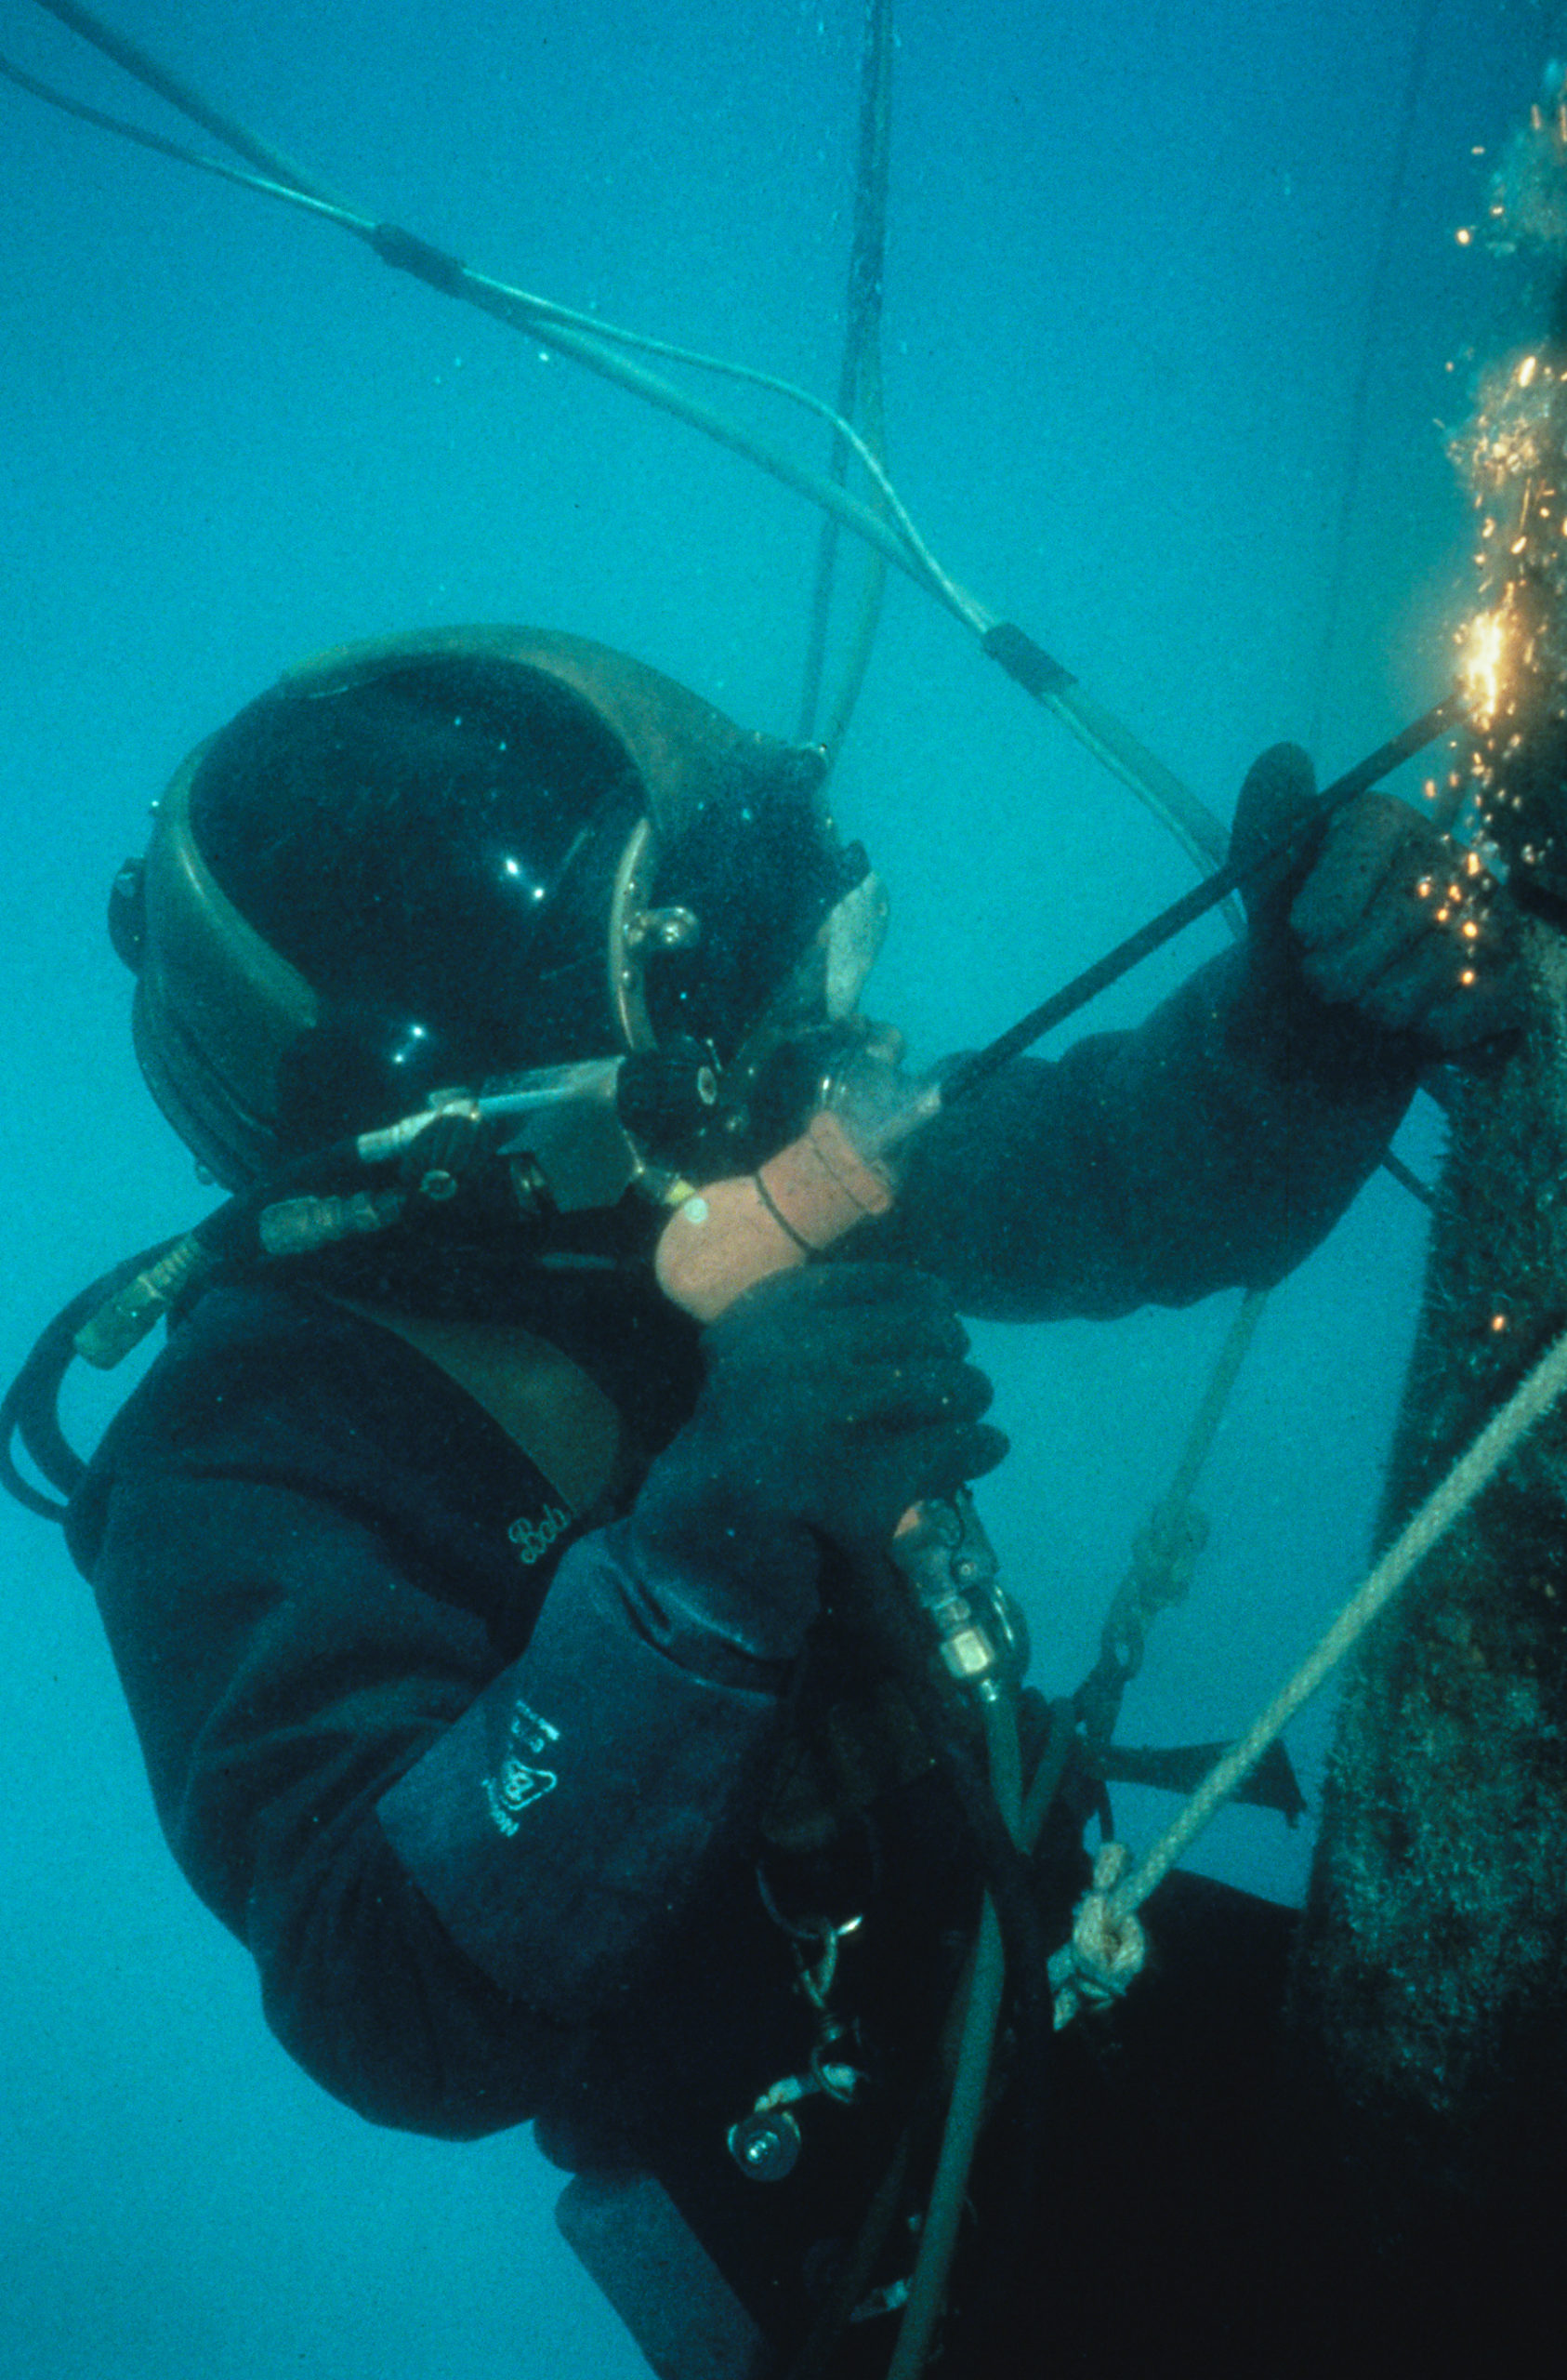 A picture depicting diving services